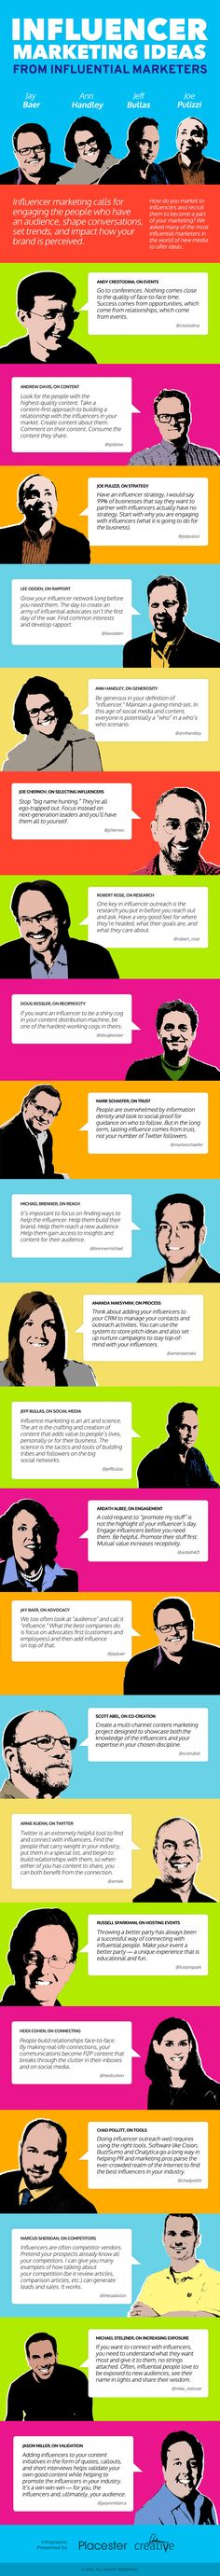 Influencer Marketing Ideas from Influential Marketers [Infographic]  #BuildRelationships #FindInfluencers